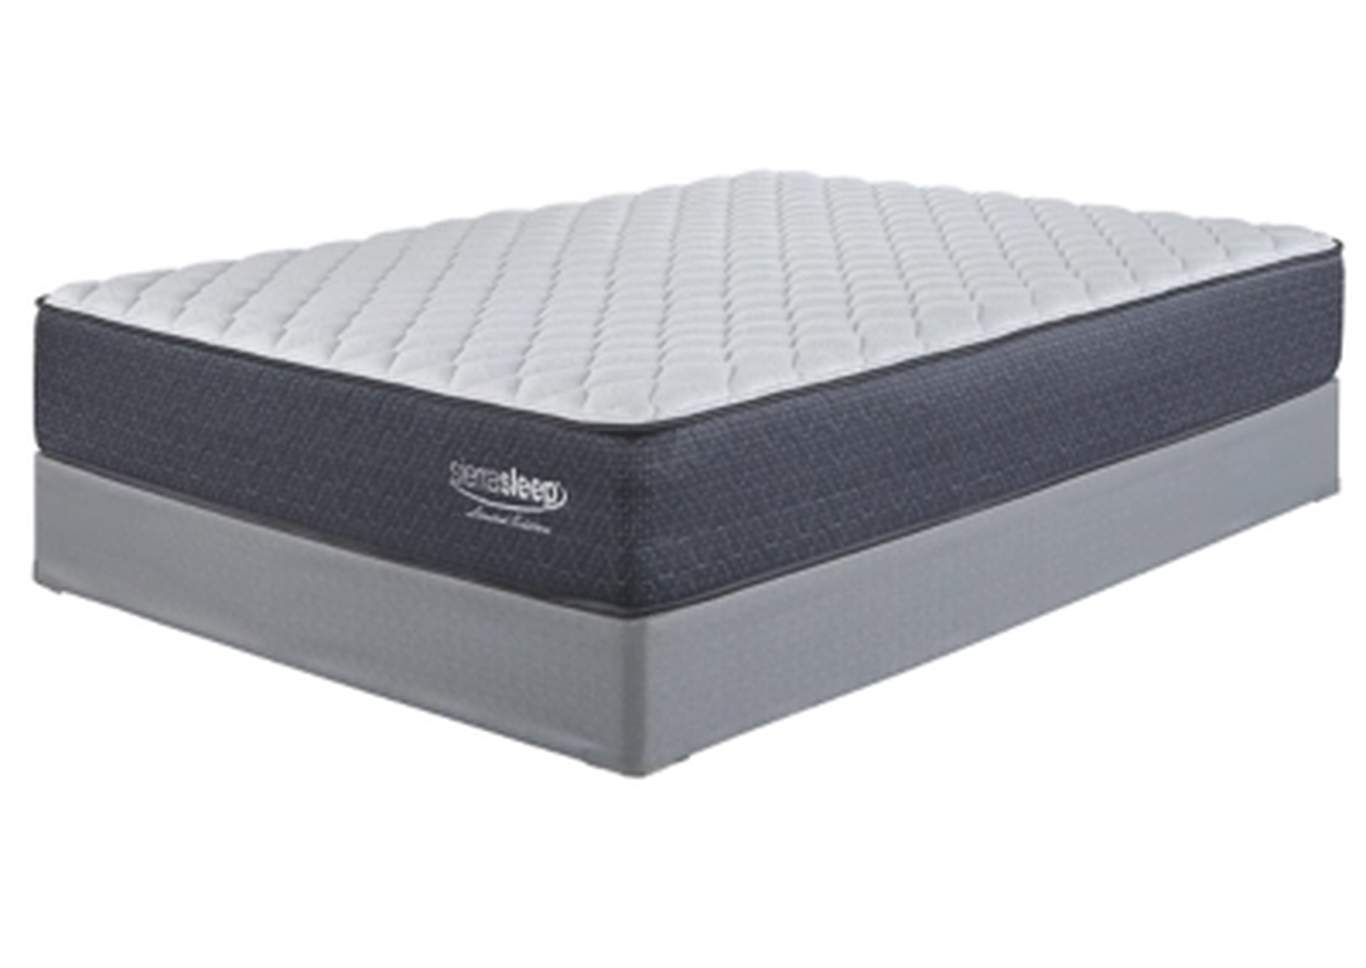 Limited Edition Firm White Twin Mattress,Sierra Sleep